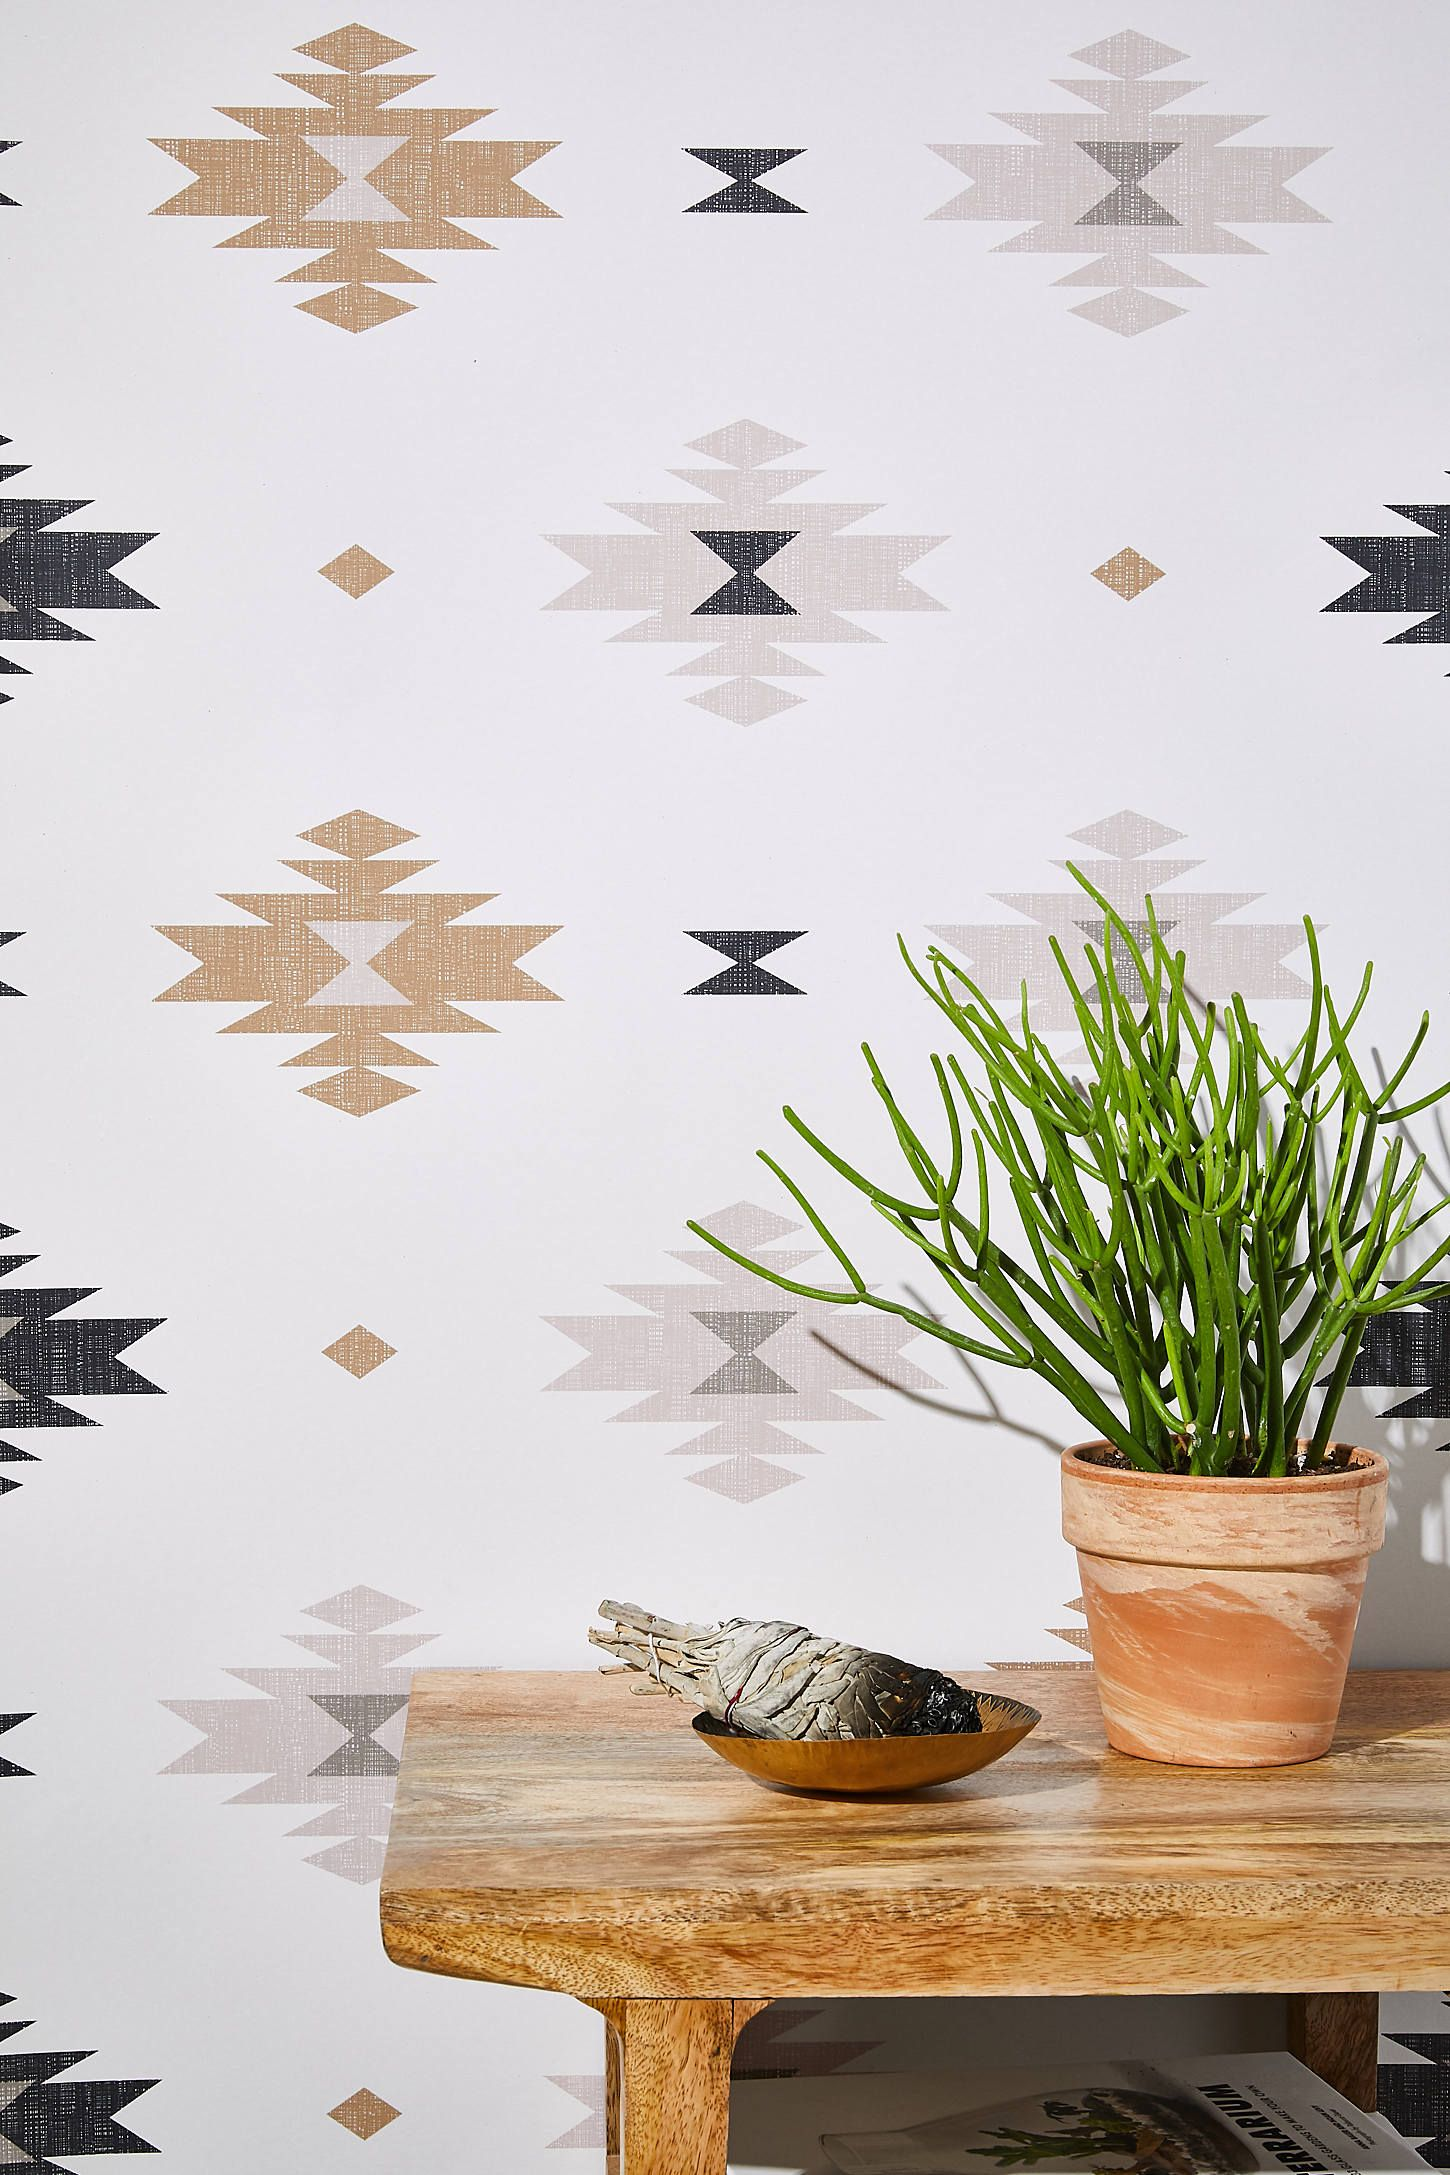 Mesa Geo Removable Wallpaper In 2021 Removable Wallpaper Stick On Wallpaper Geometric Removable Wallpaper